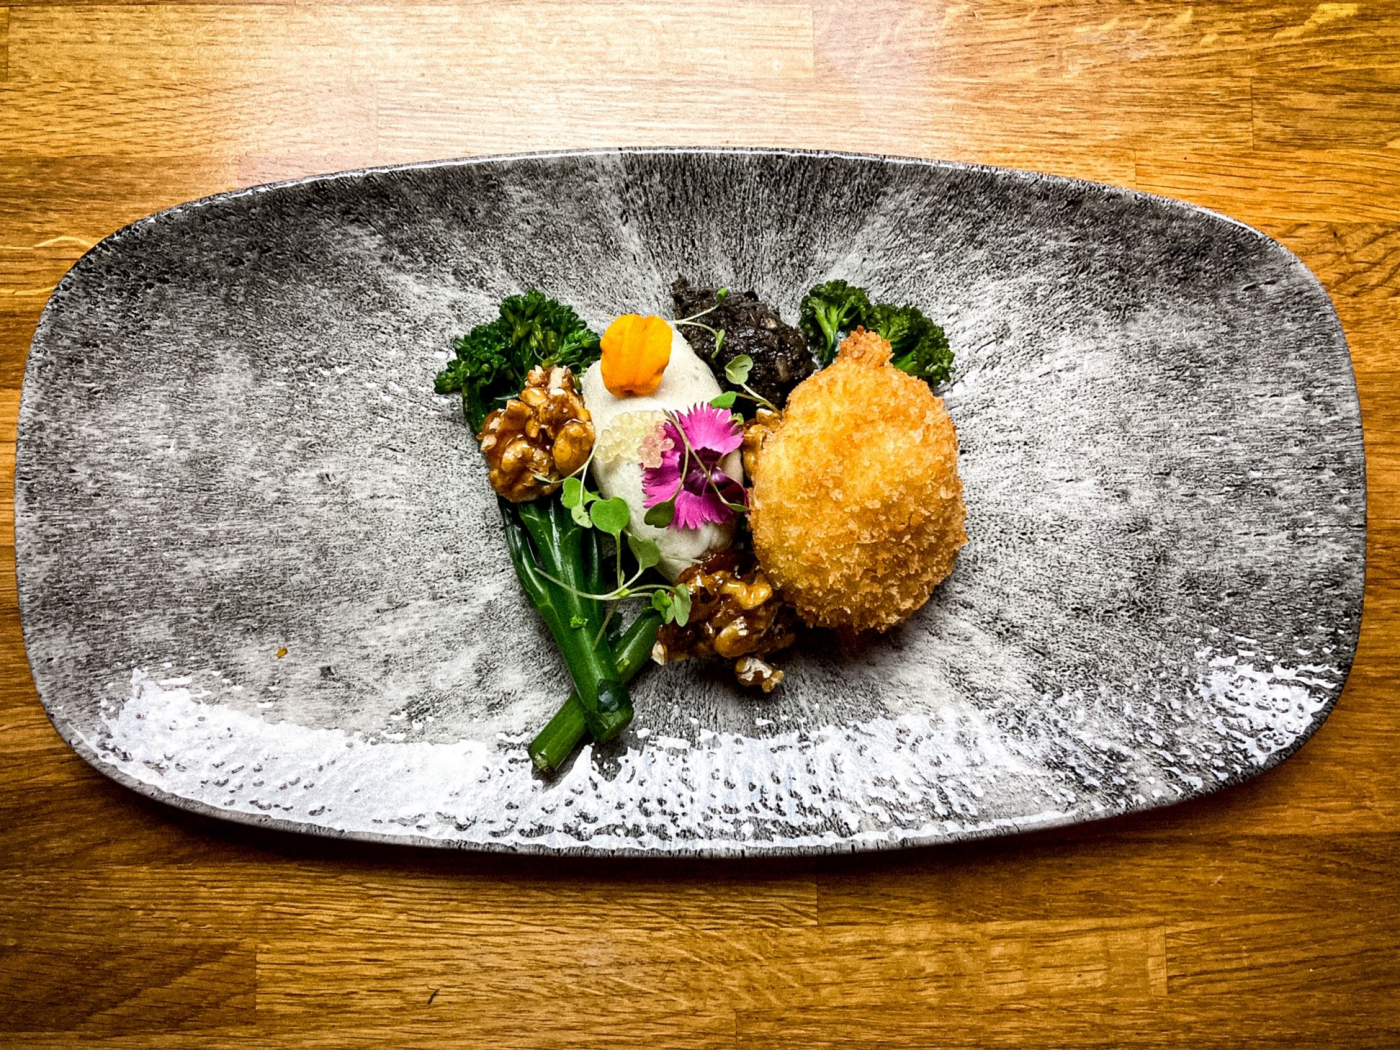 Crispy poached egg, tenderstem broccoli, roquefort mousse, candied walnuts, tapenade, lemon & basil dressing